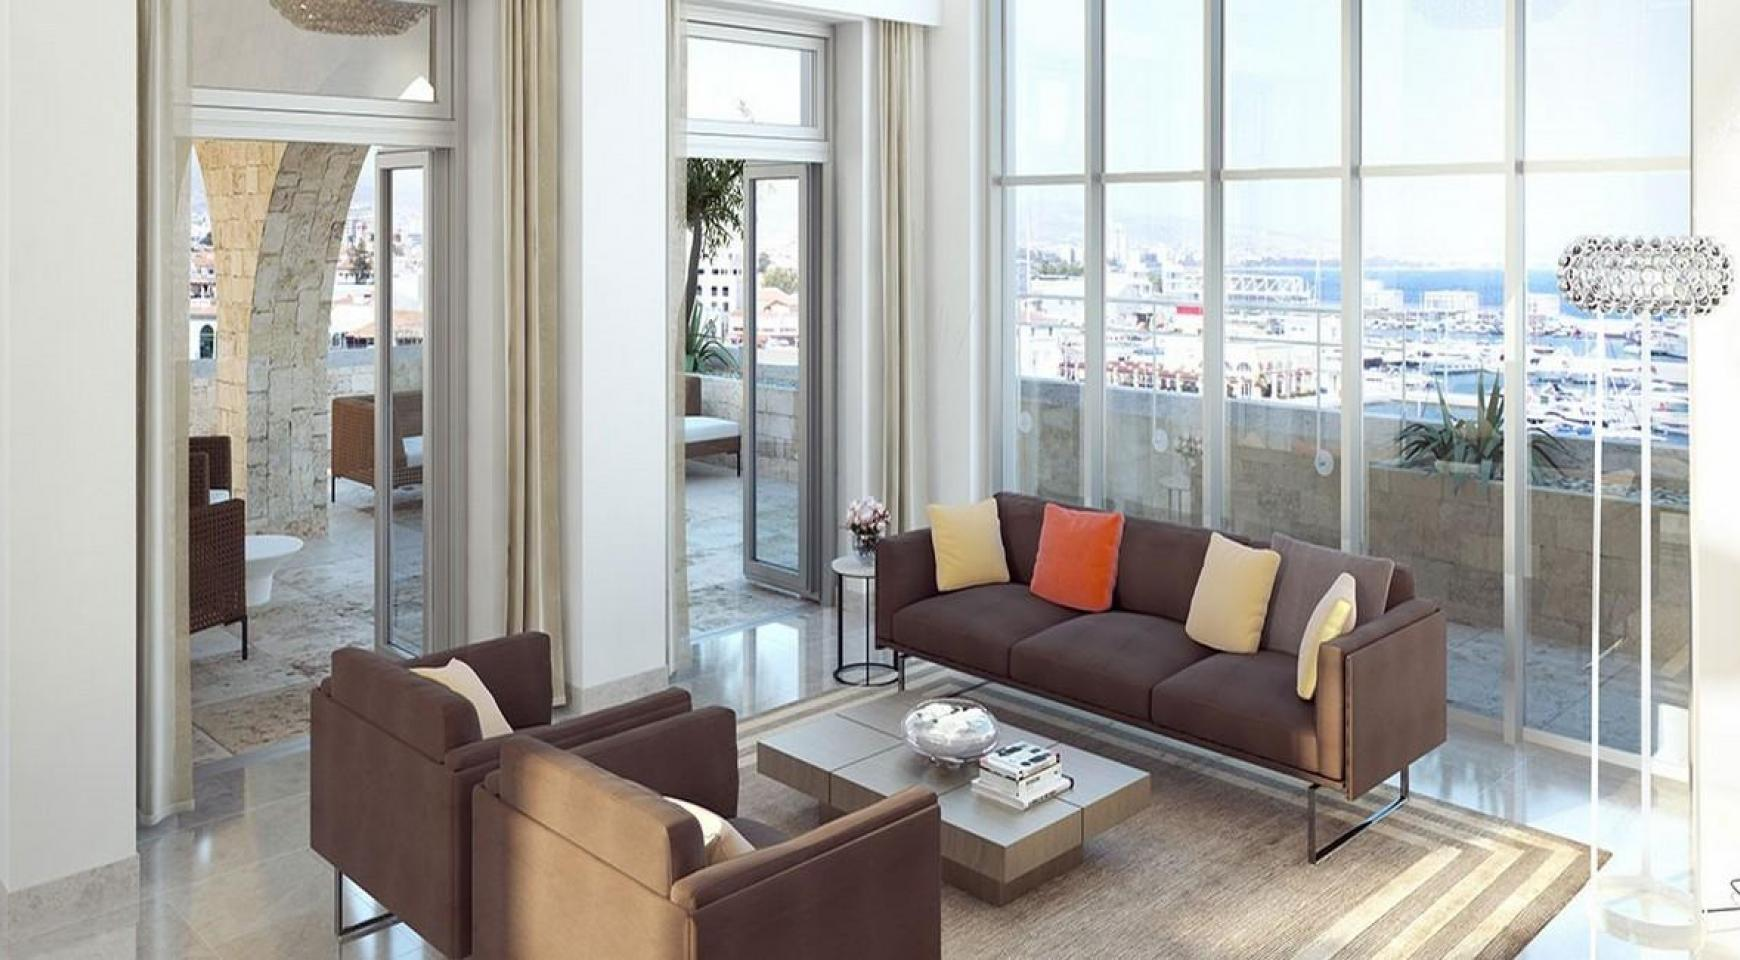 2 Bedroom Apartment in an Exclusive Project on the Sea - 4